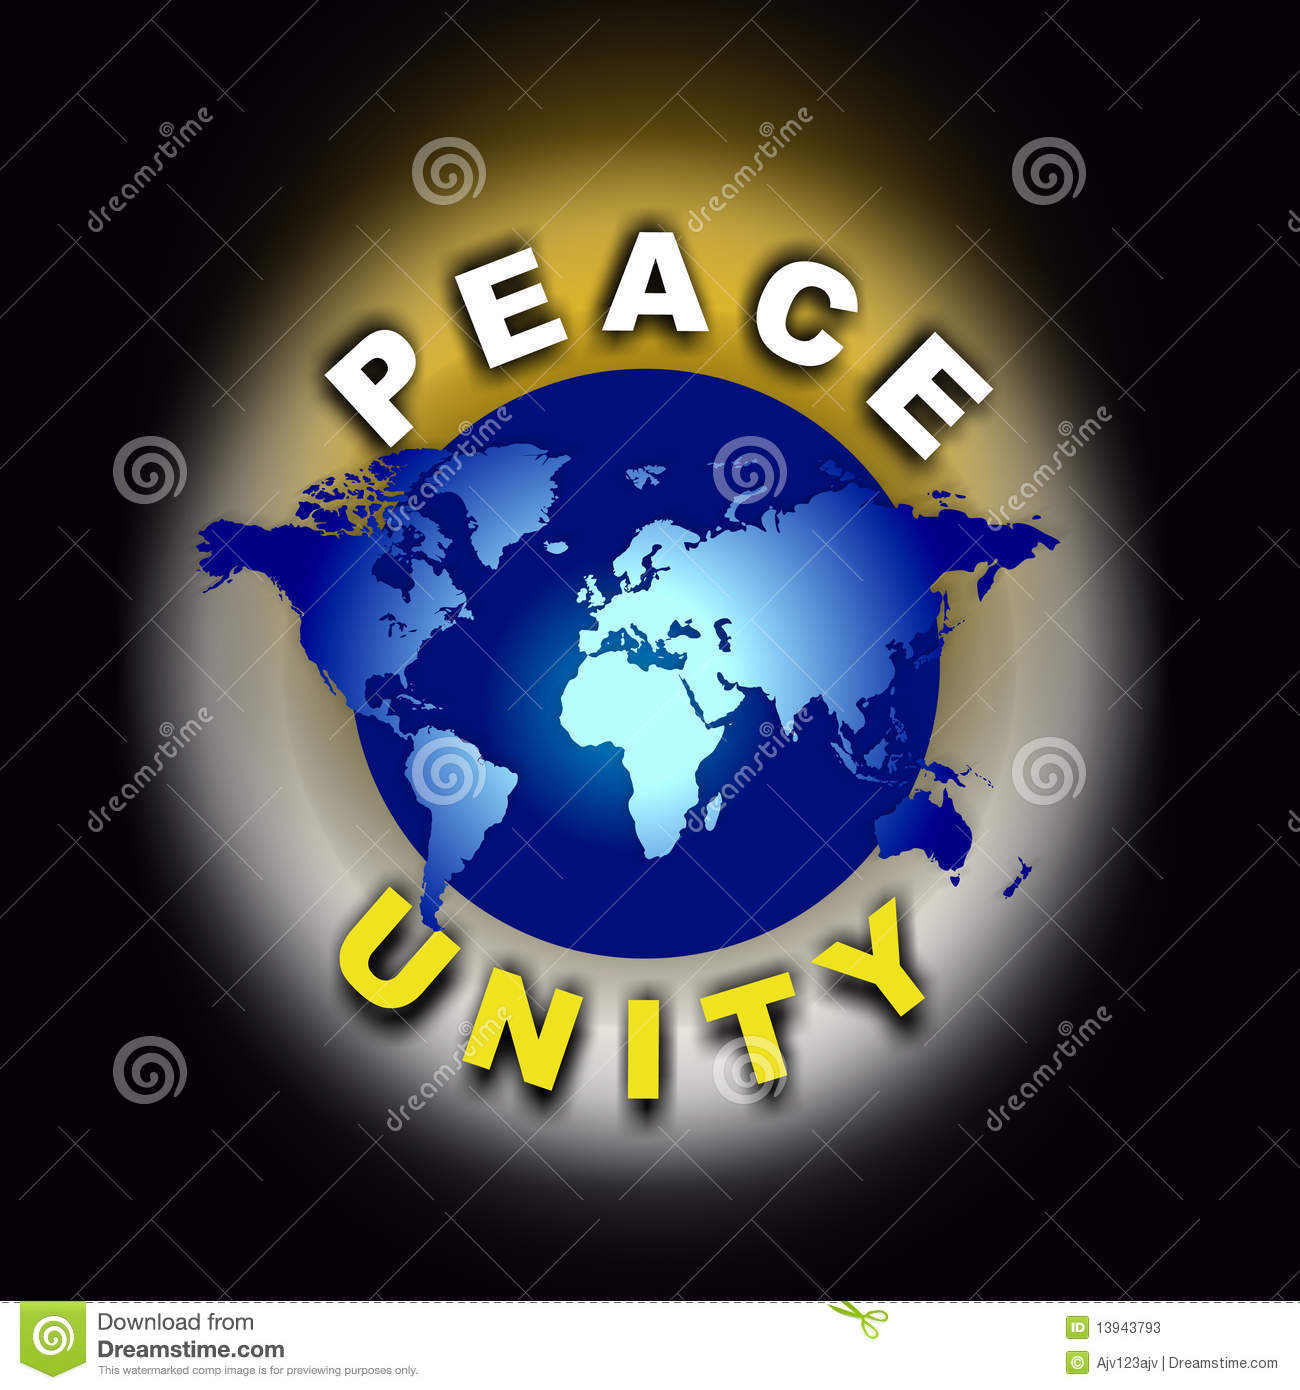 peace and unity Paul's letter to the ephesians is about god's marvelous plan to bring peace, unity and salvation to all peoples—jews and gentiles alike.